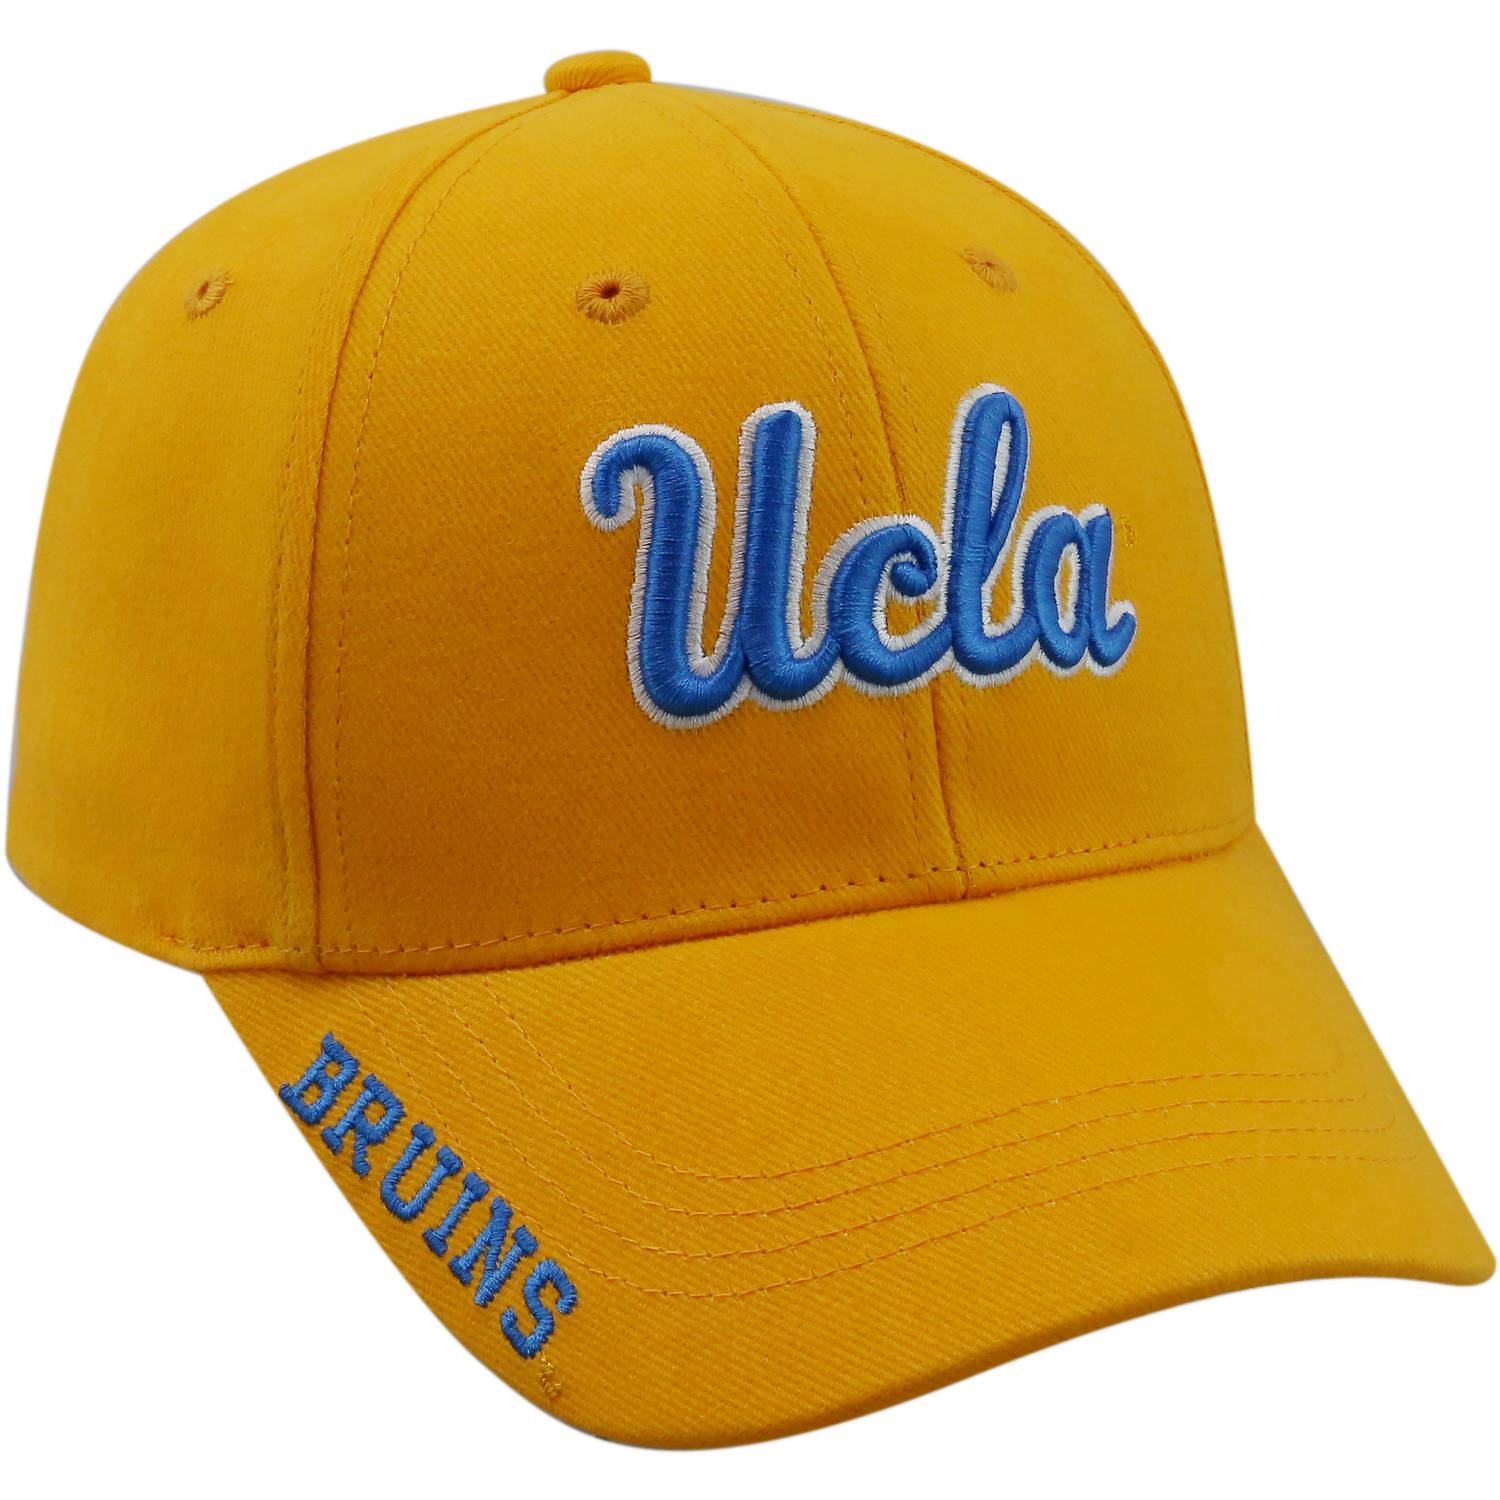 University Of Ucla Bruins Away Baseball Cap